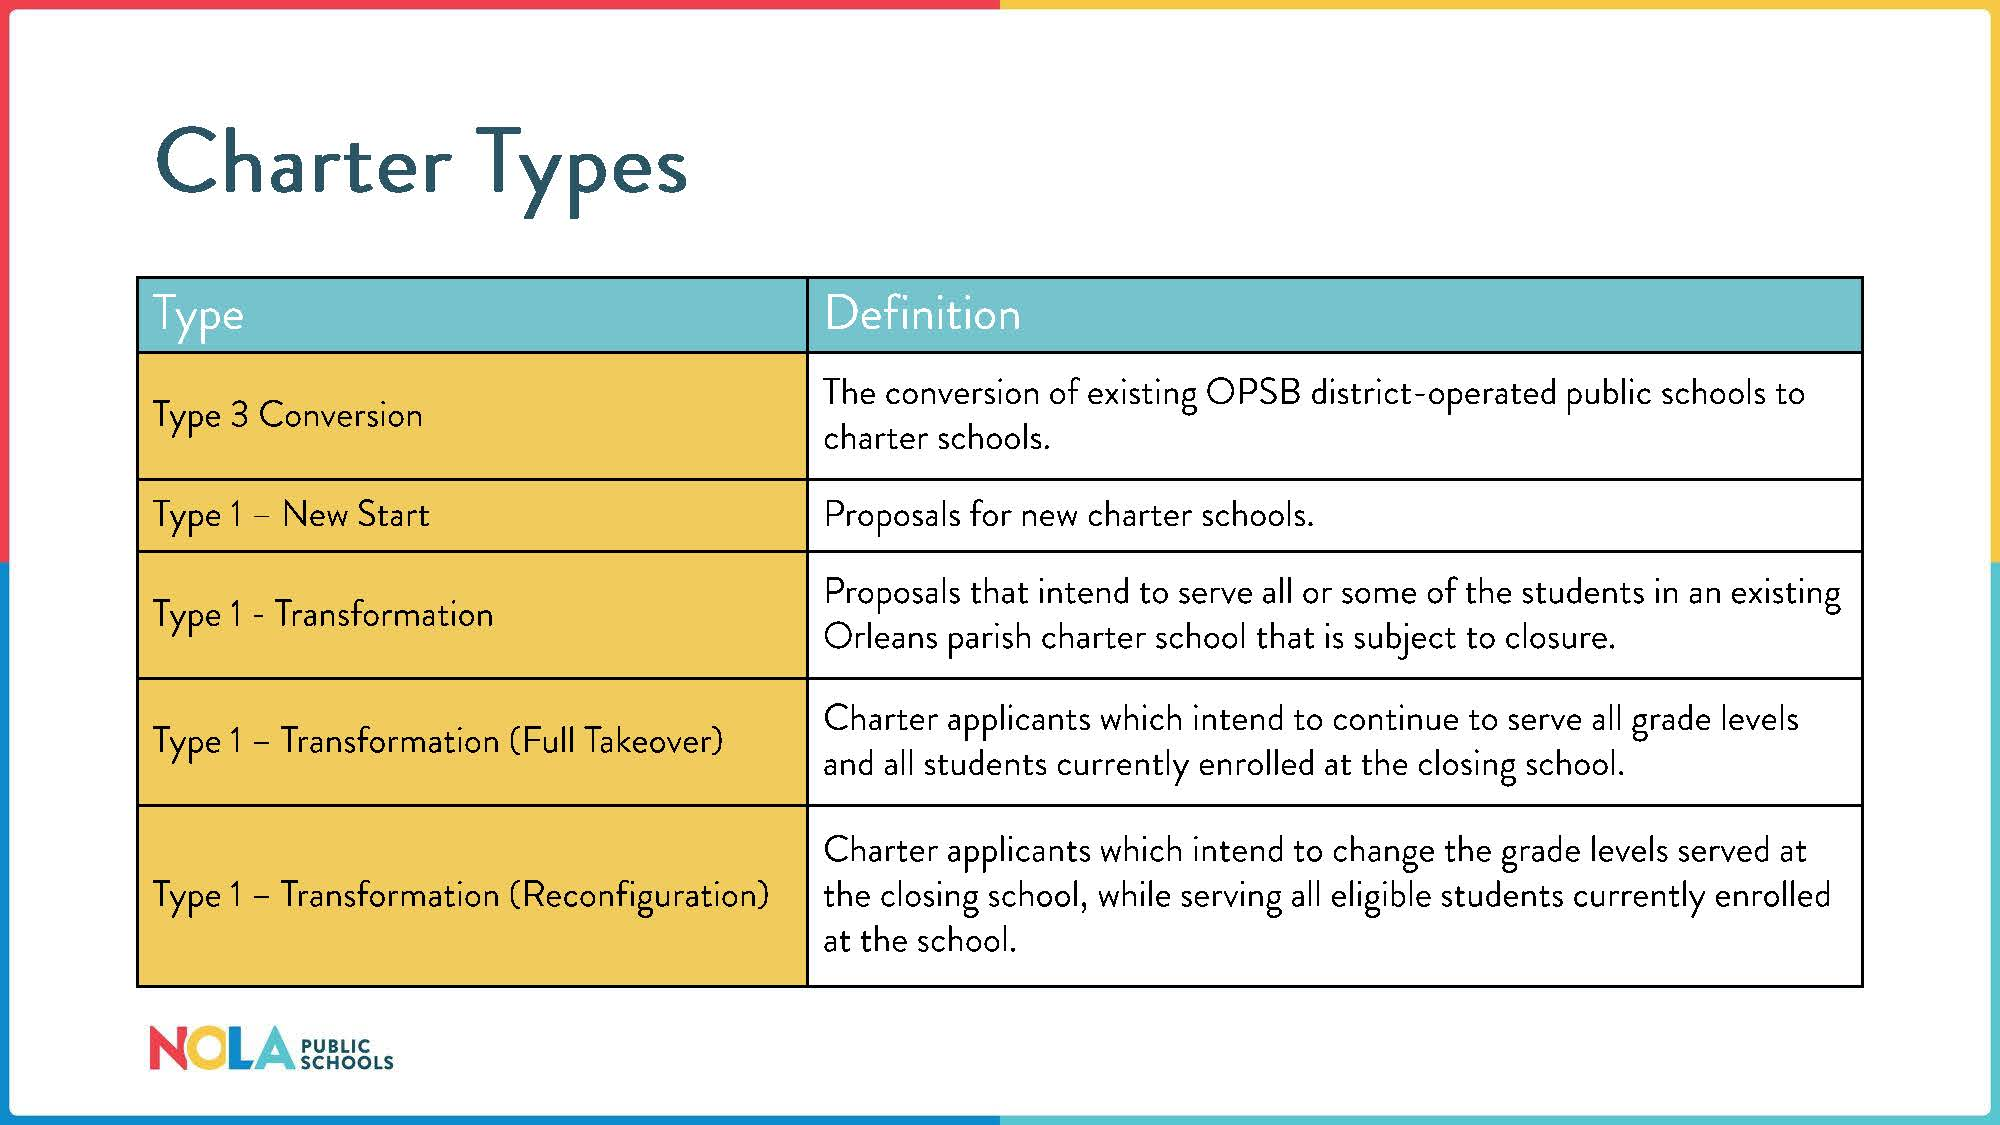 Charter Types, including Type 3 Conversion, Type 1 New Start, Type 1 Transformation, Type 1 Transformation (Full Takeover), Type 1 Transformation (Reconfiguration)